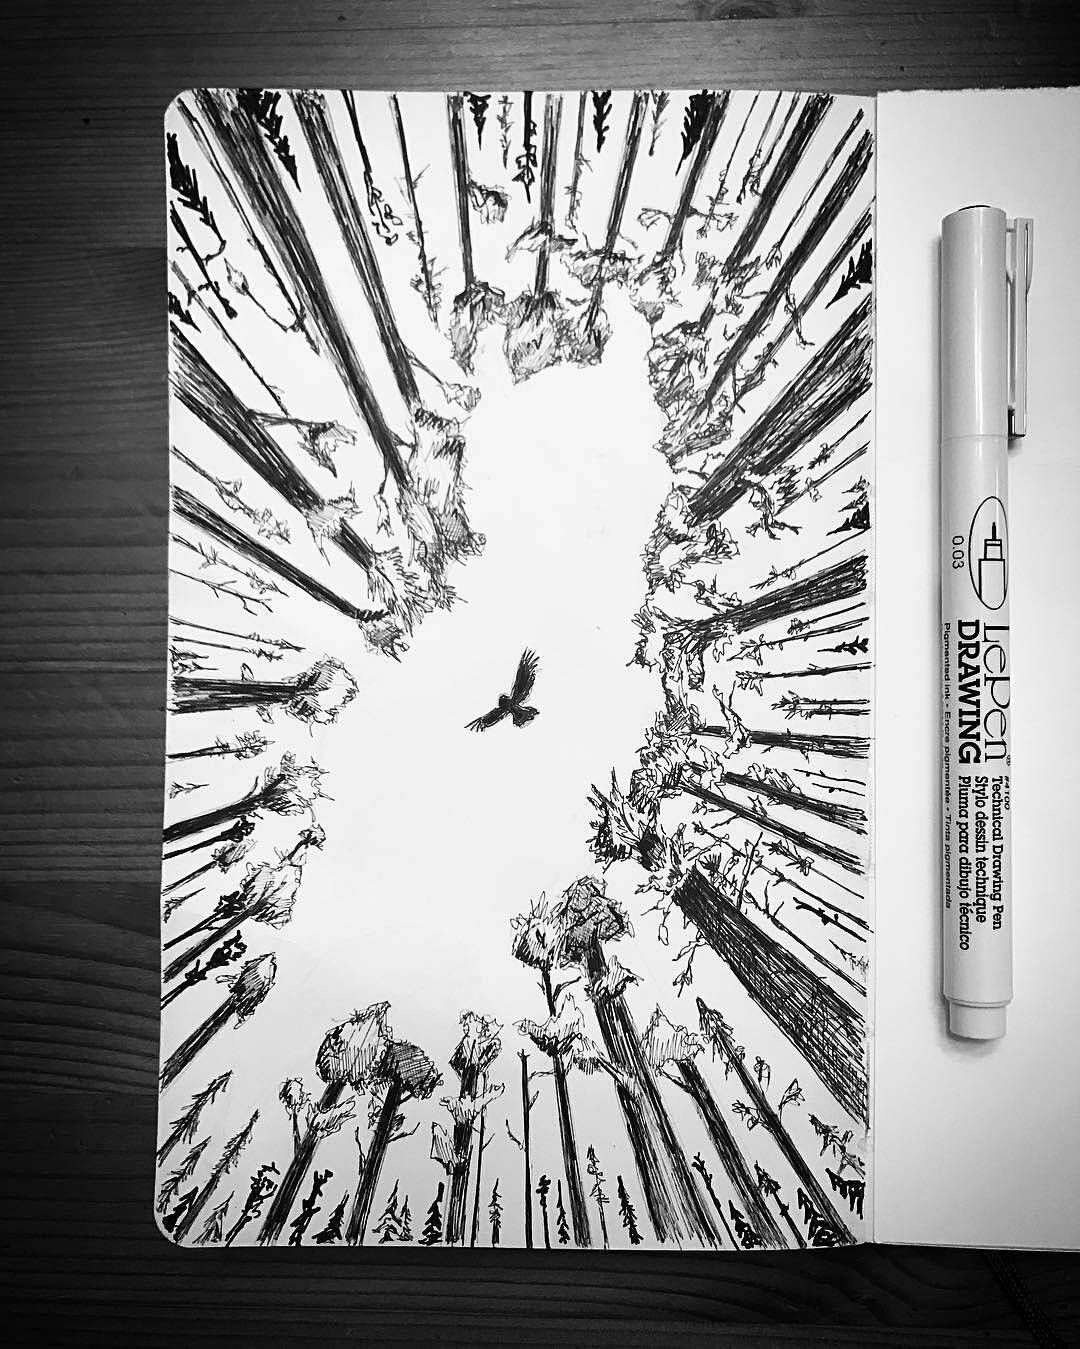 Heres a unique penandink nature sketch by kenny eicher sketchy mcgee of an owl soaring above the treetops a flying owl would make for an interesting